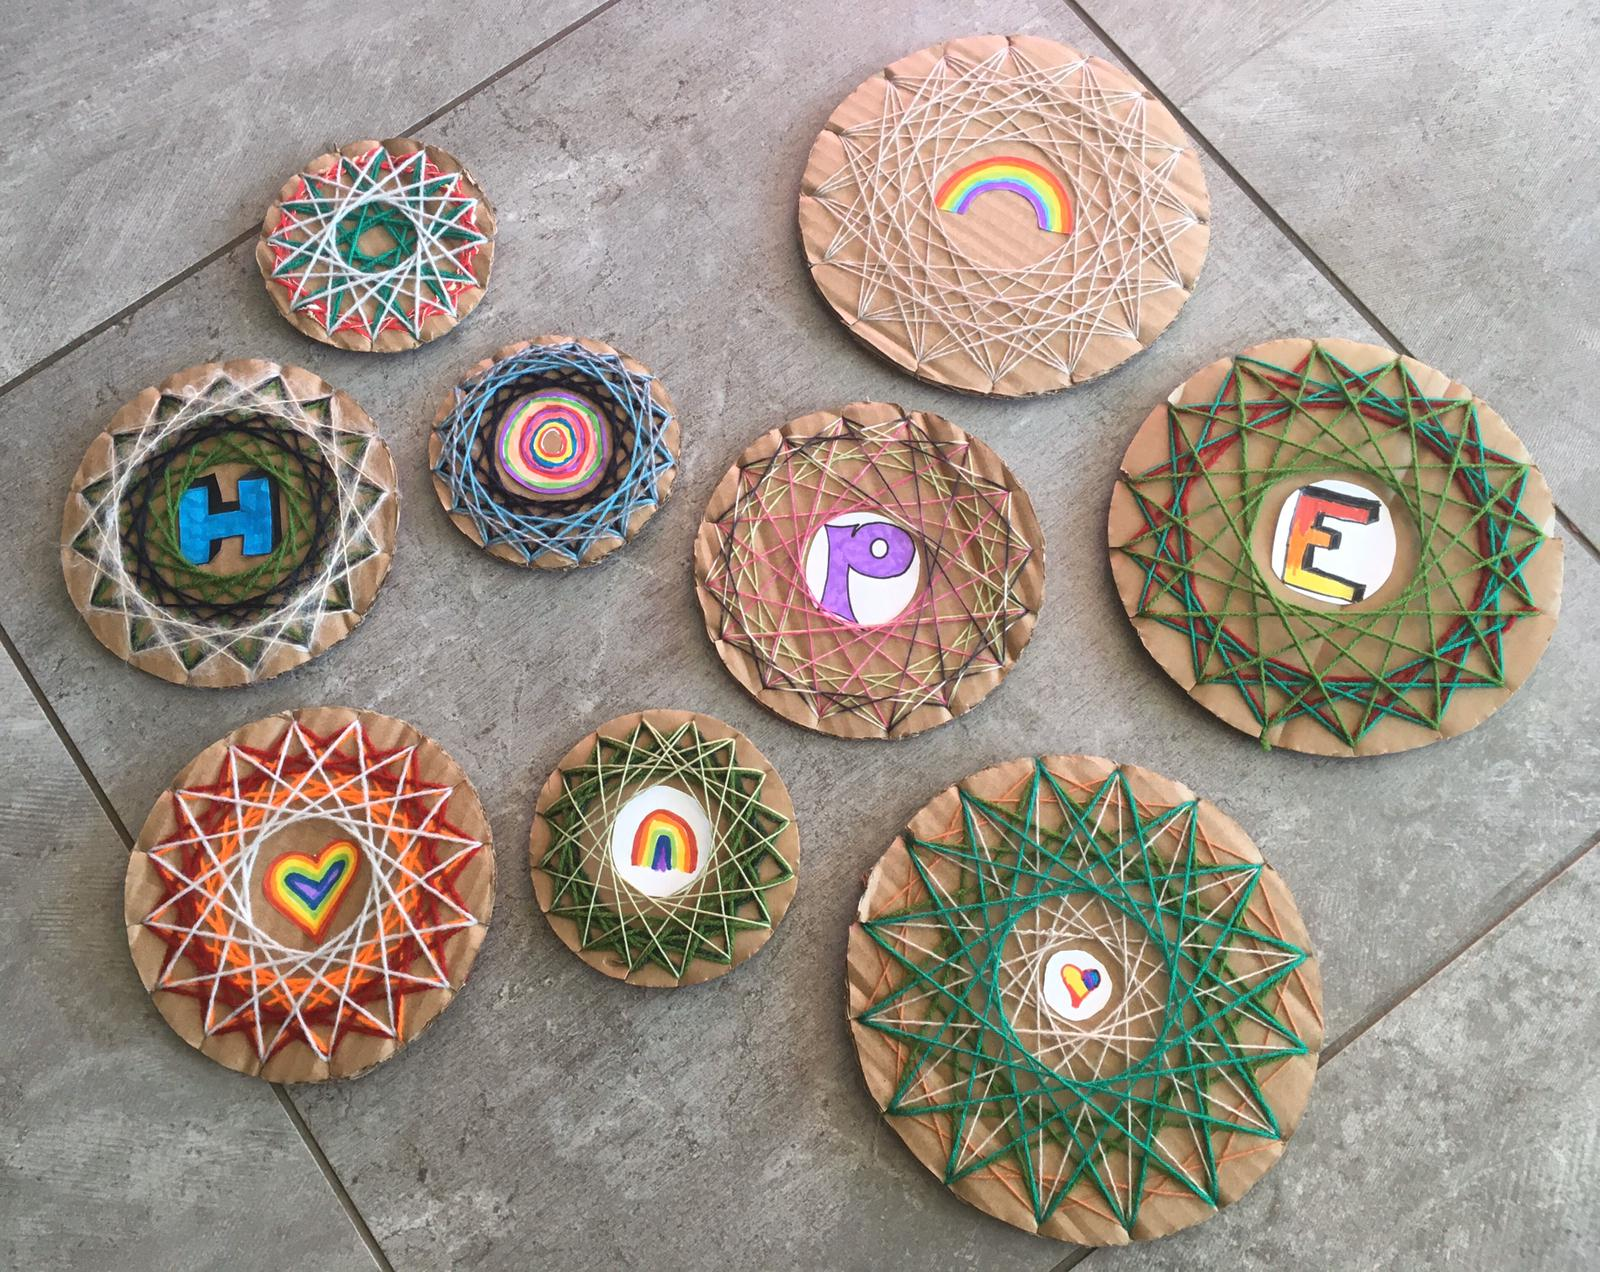 Isla and Elodie's wool mandalas